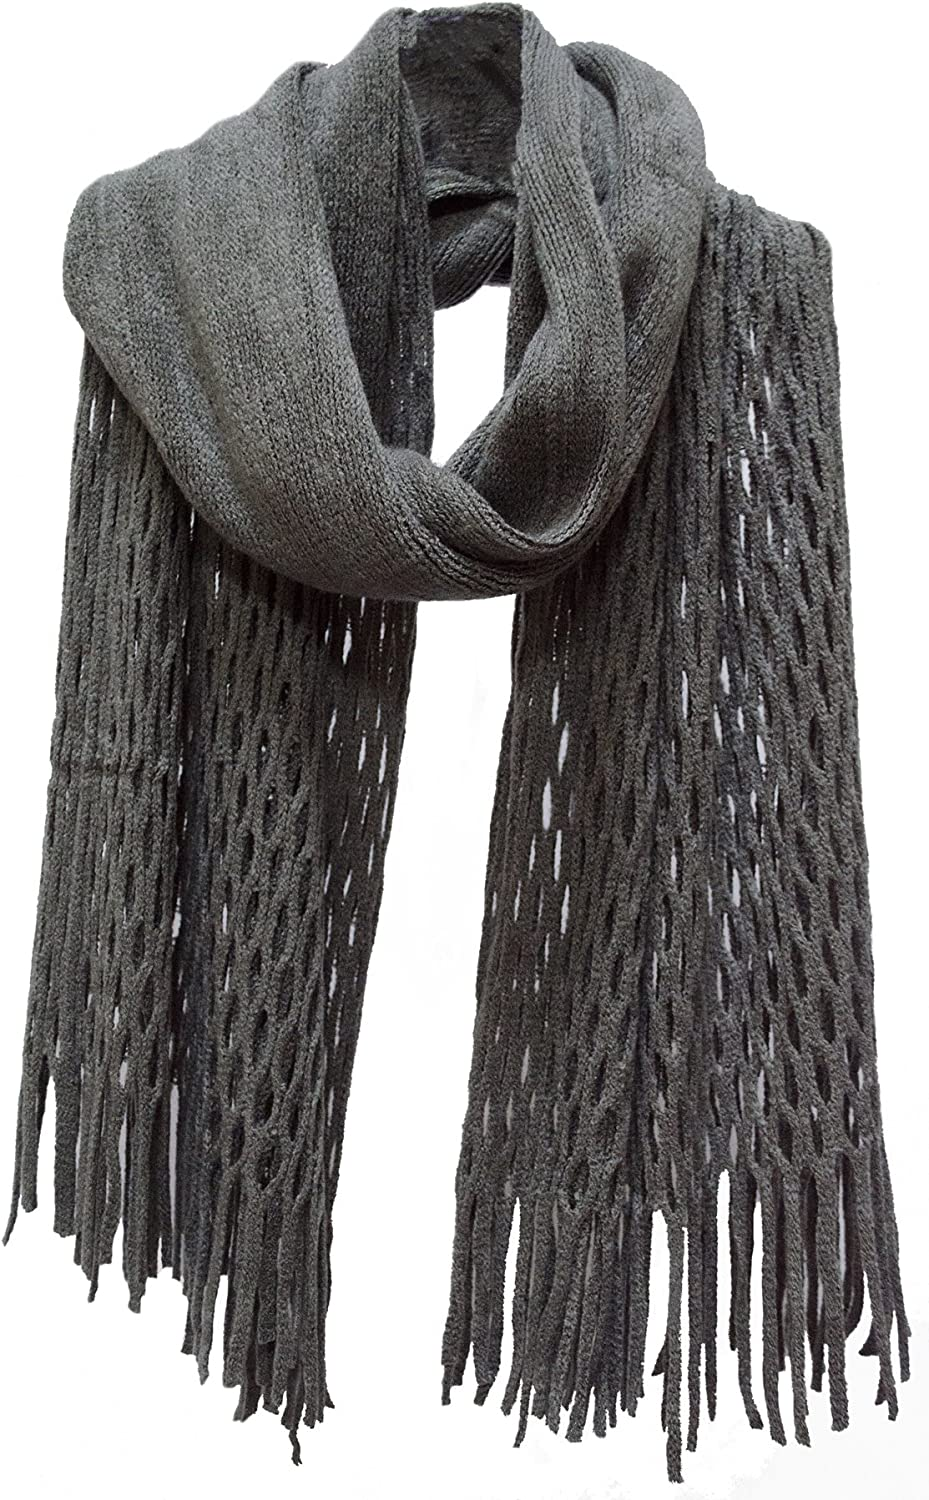 Honeycomb Fringed Knit Scarf Grey